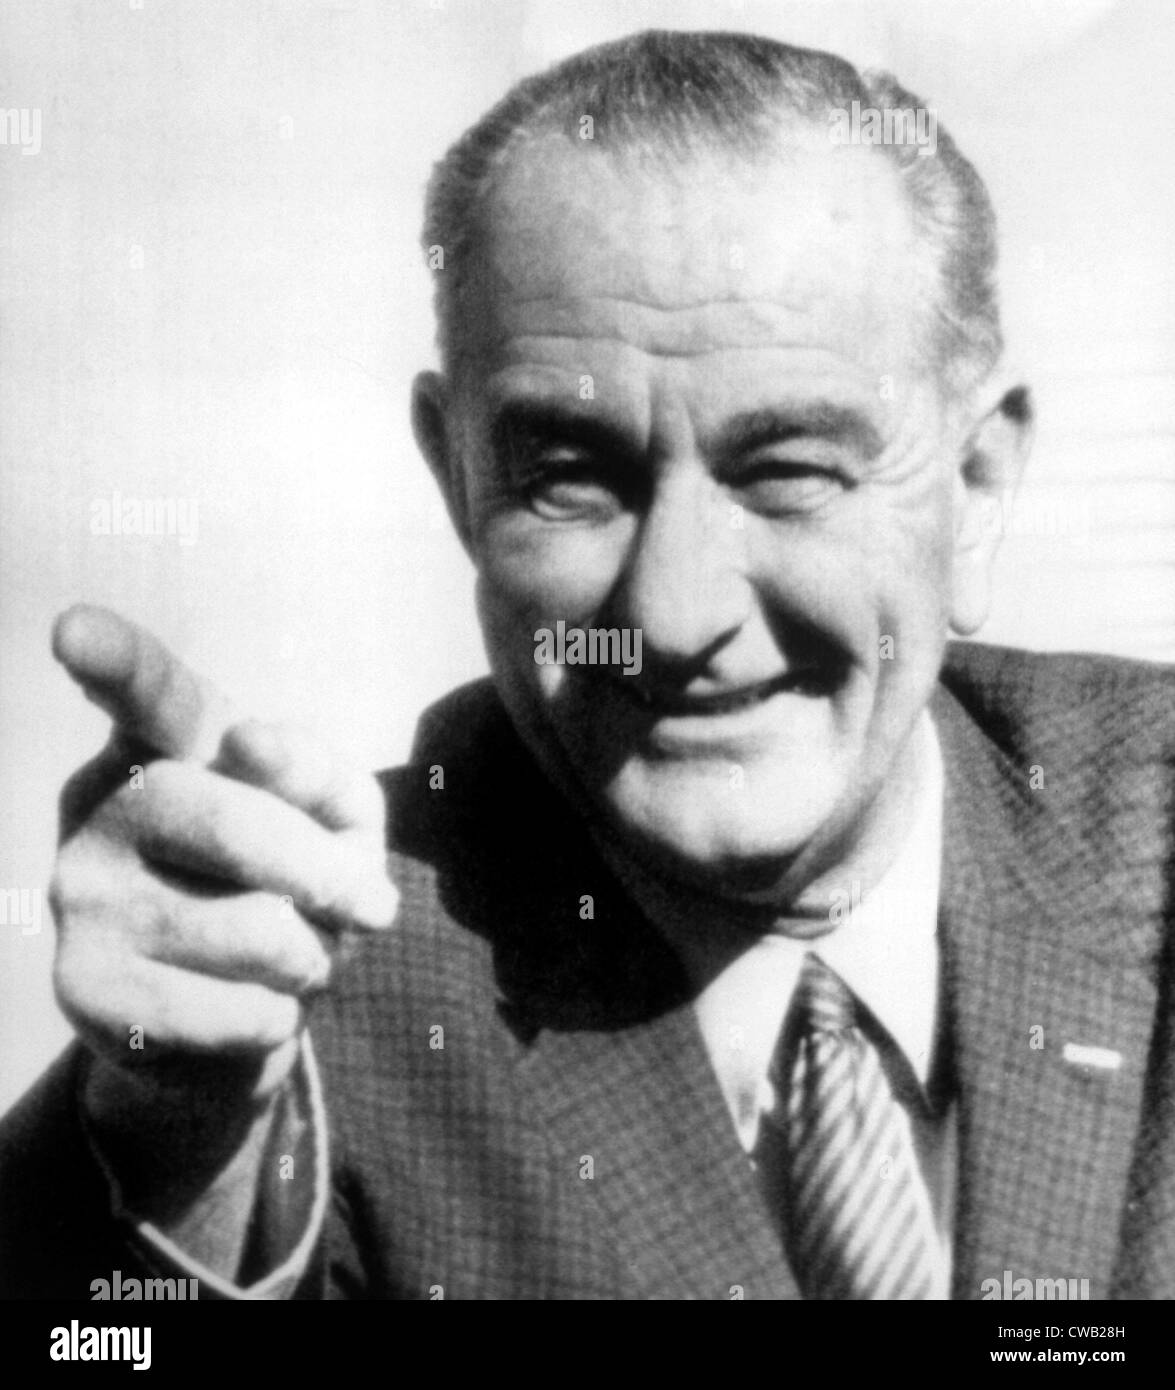 Vice President Lyndon B. Johnson, photograph from 1963 - Stock Image